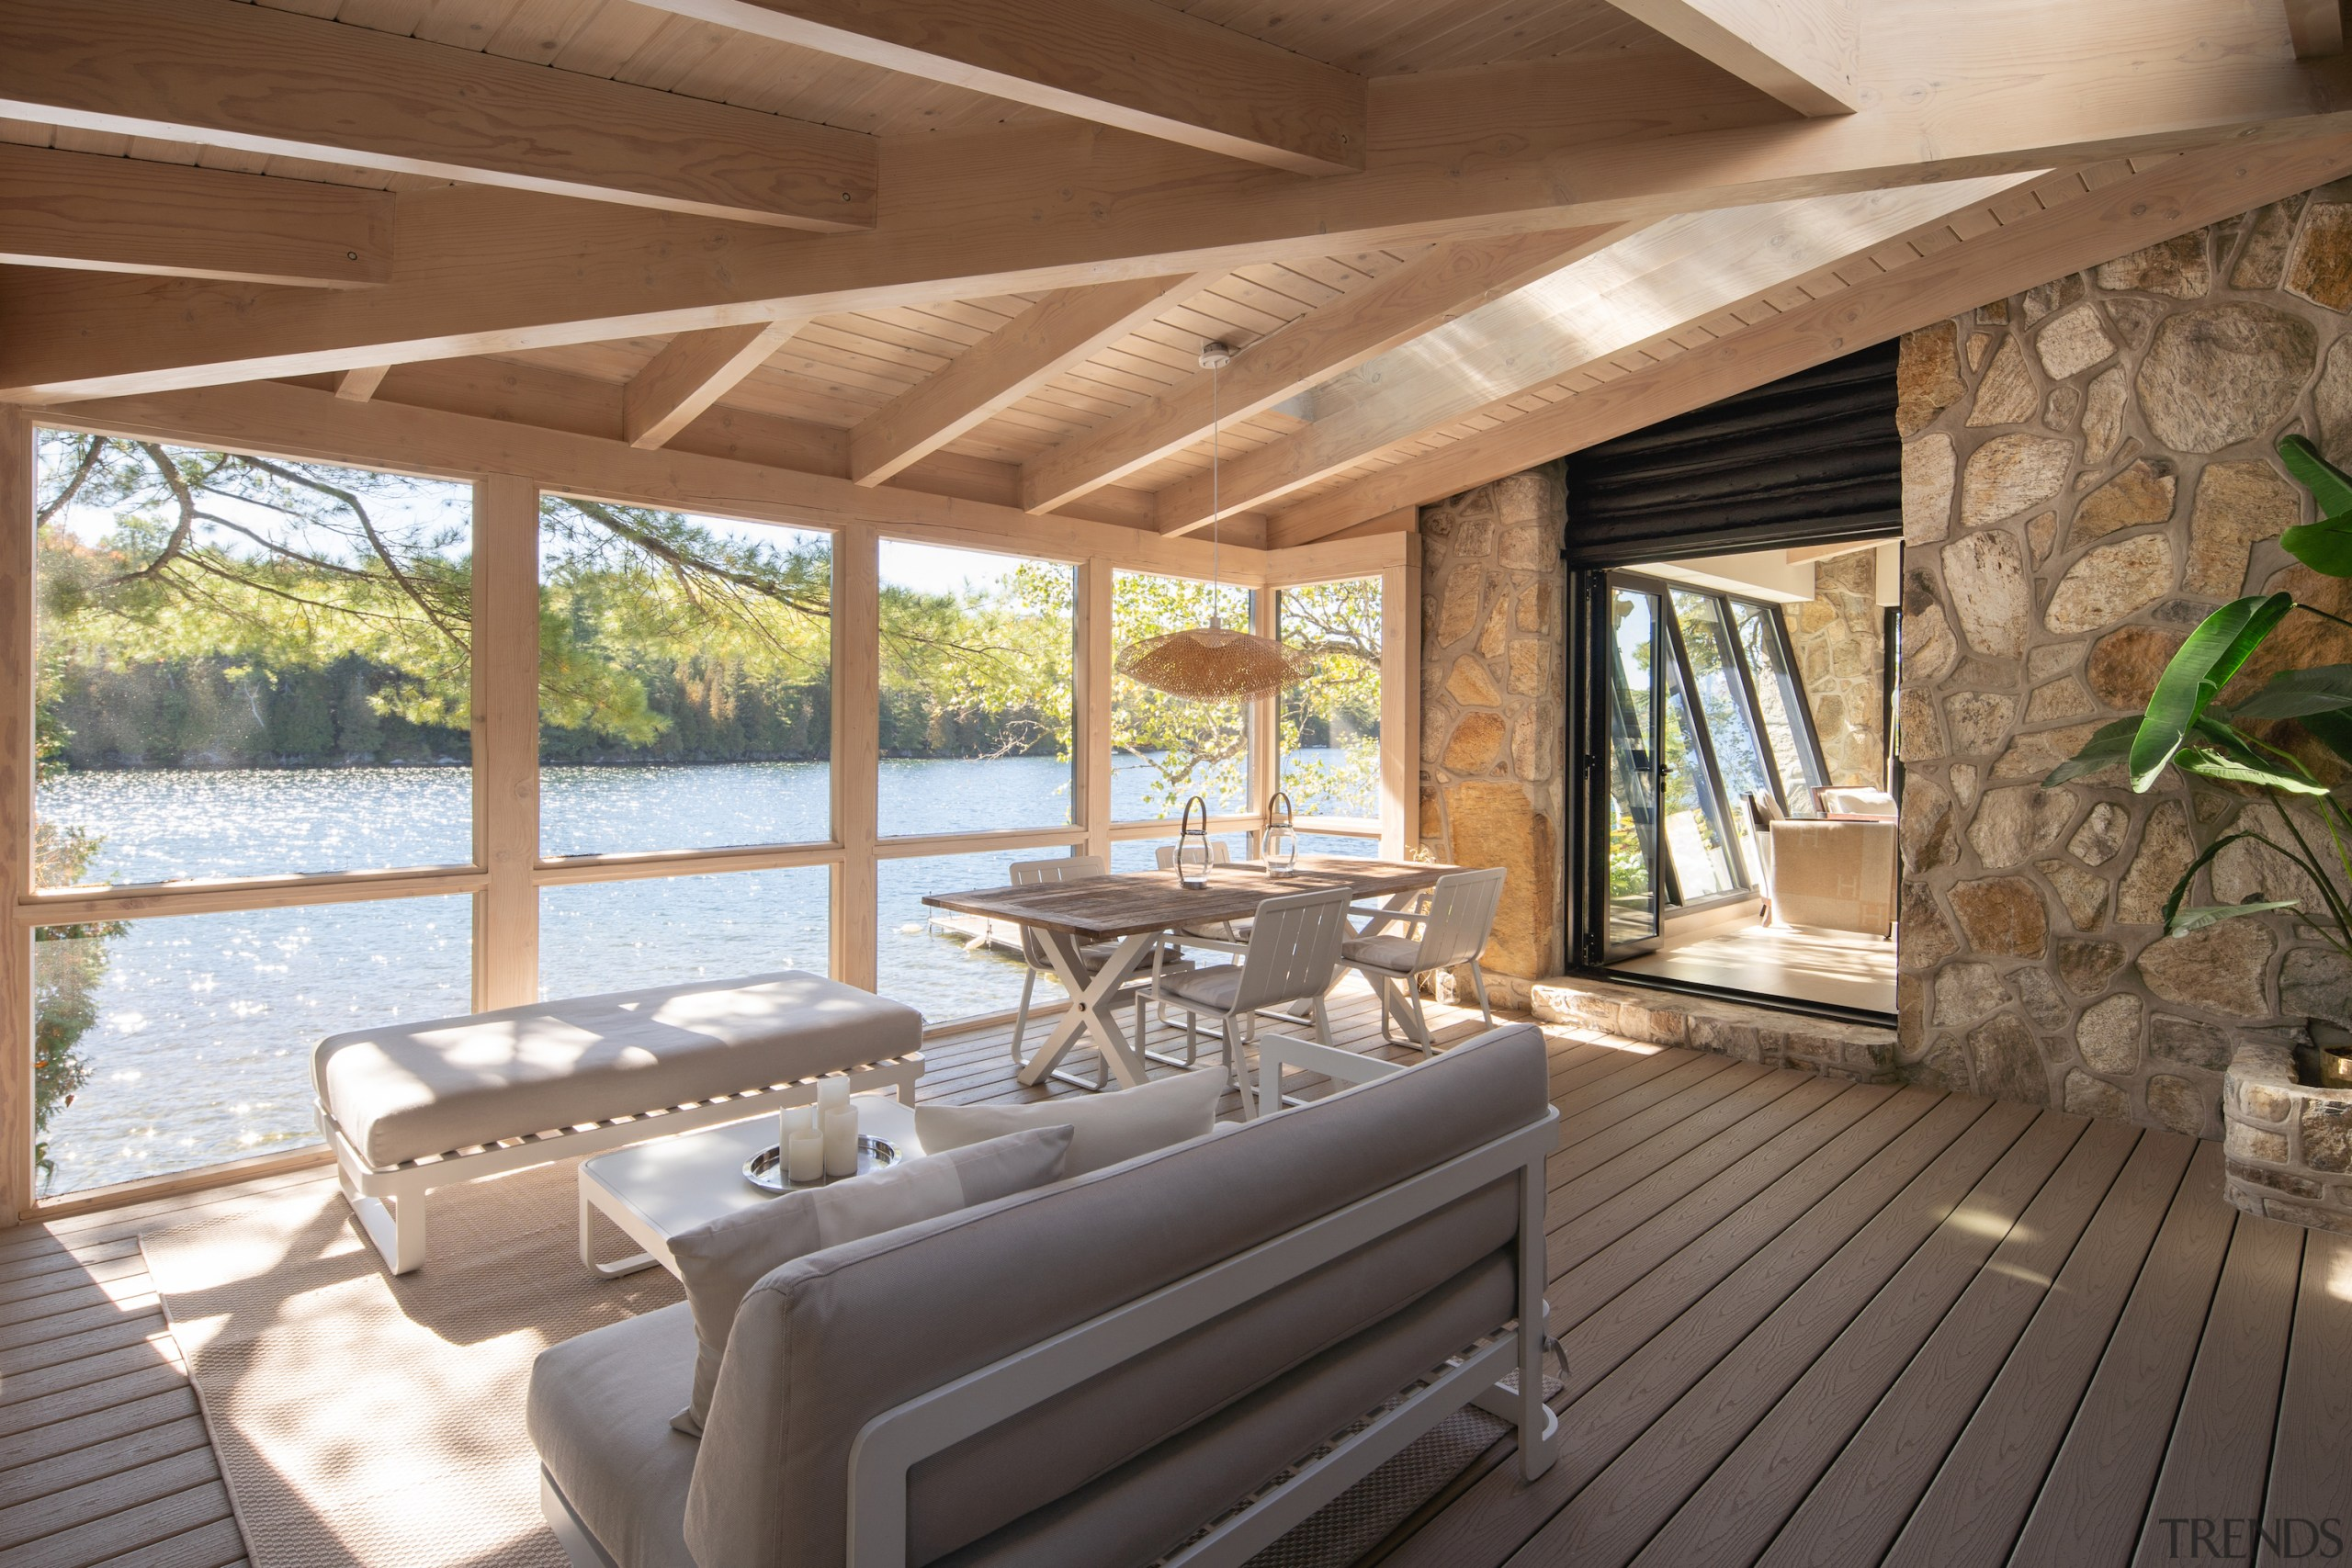 From cottage to scenic lakeside home -